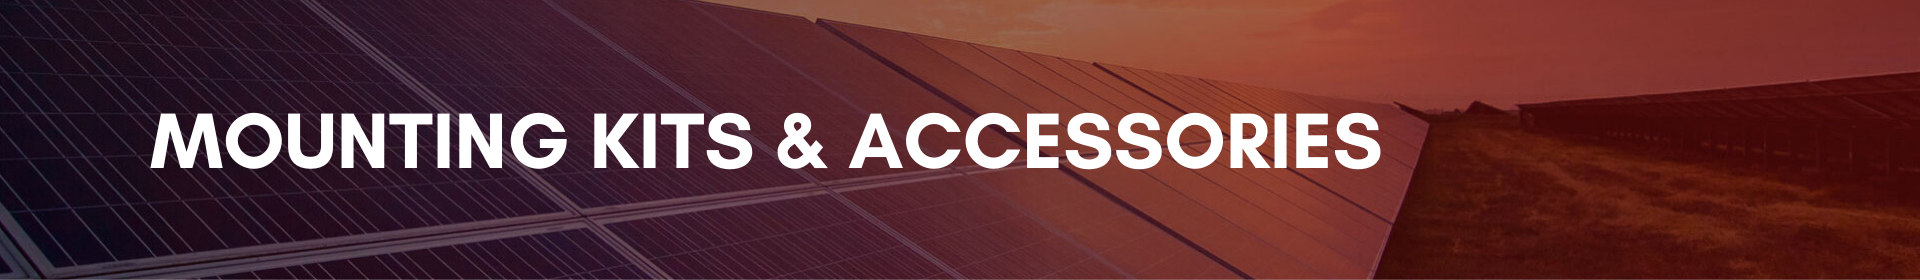 clenergy-accessories-banner